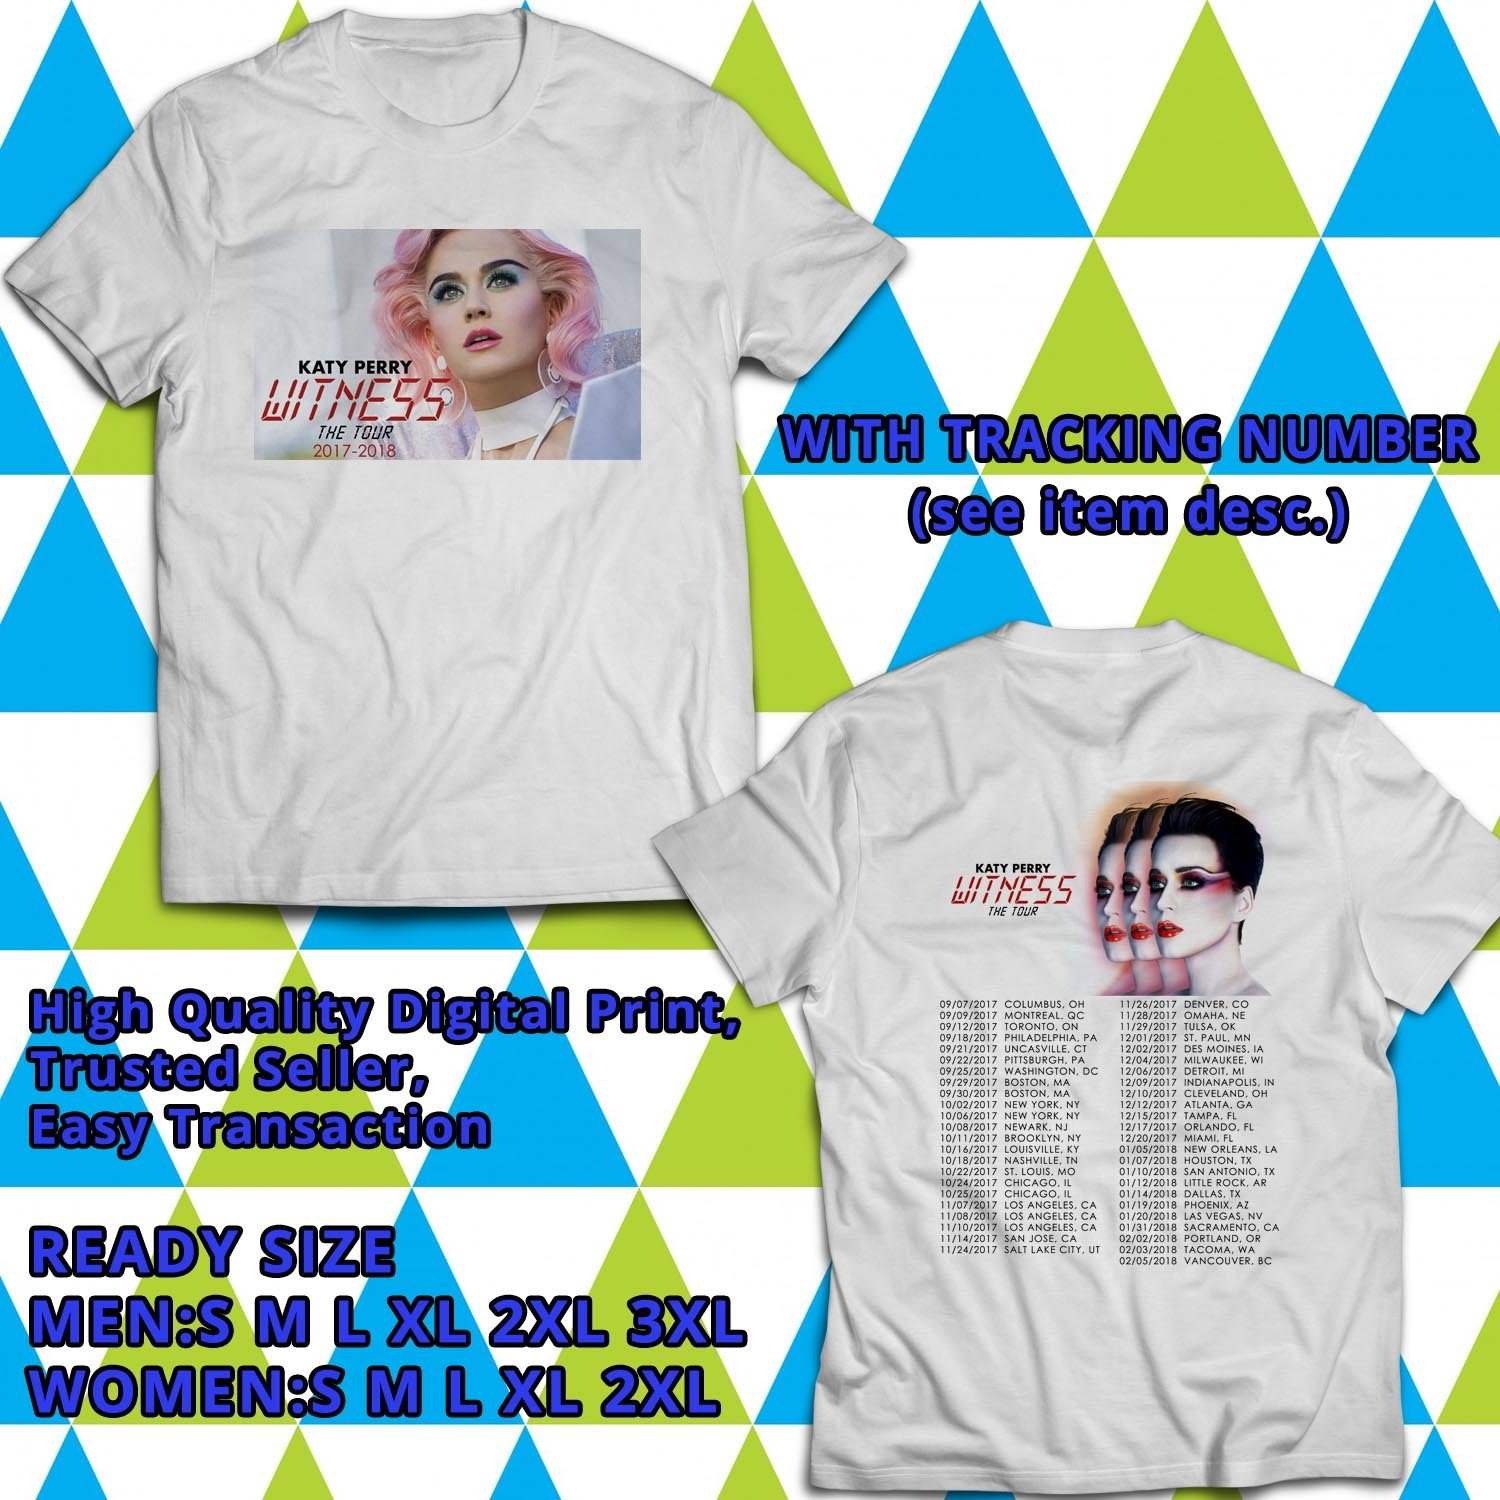 HITS KATY PERRY WITNESS TOUR 2017 WHITE TEE'S 2SIDE MAN WOMEN ASTR 600